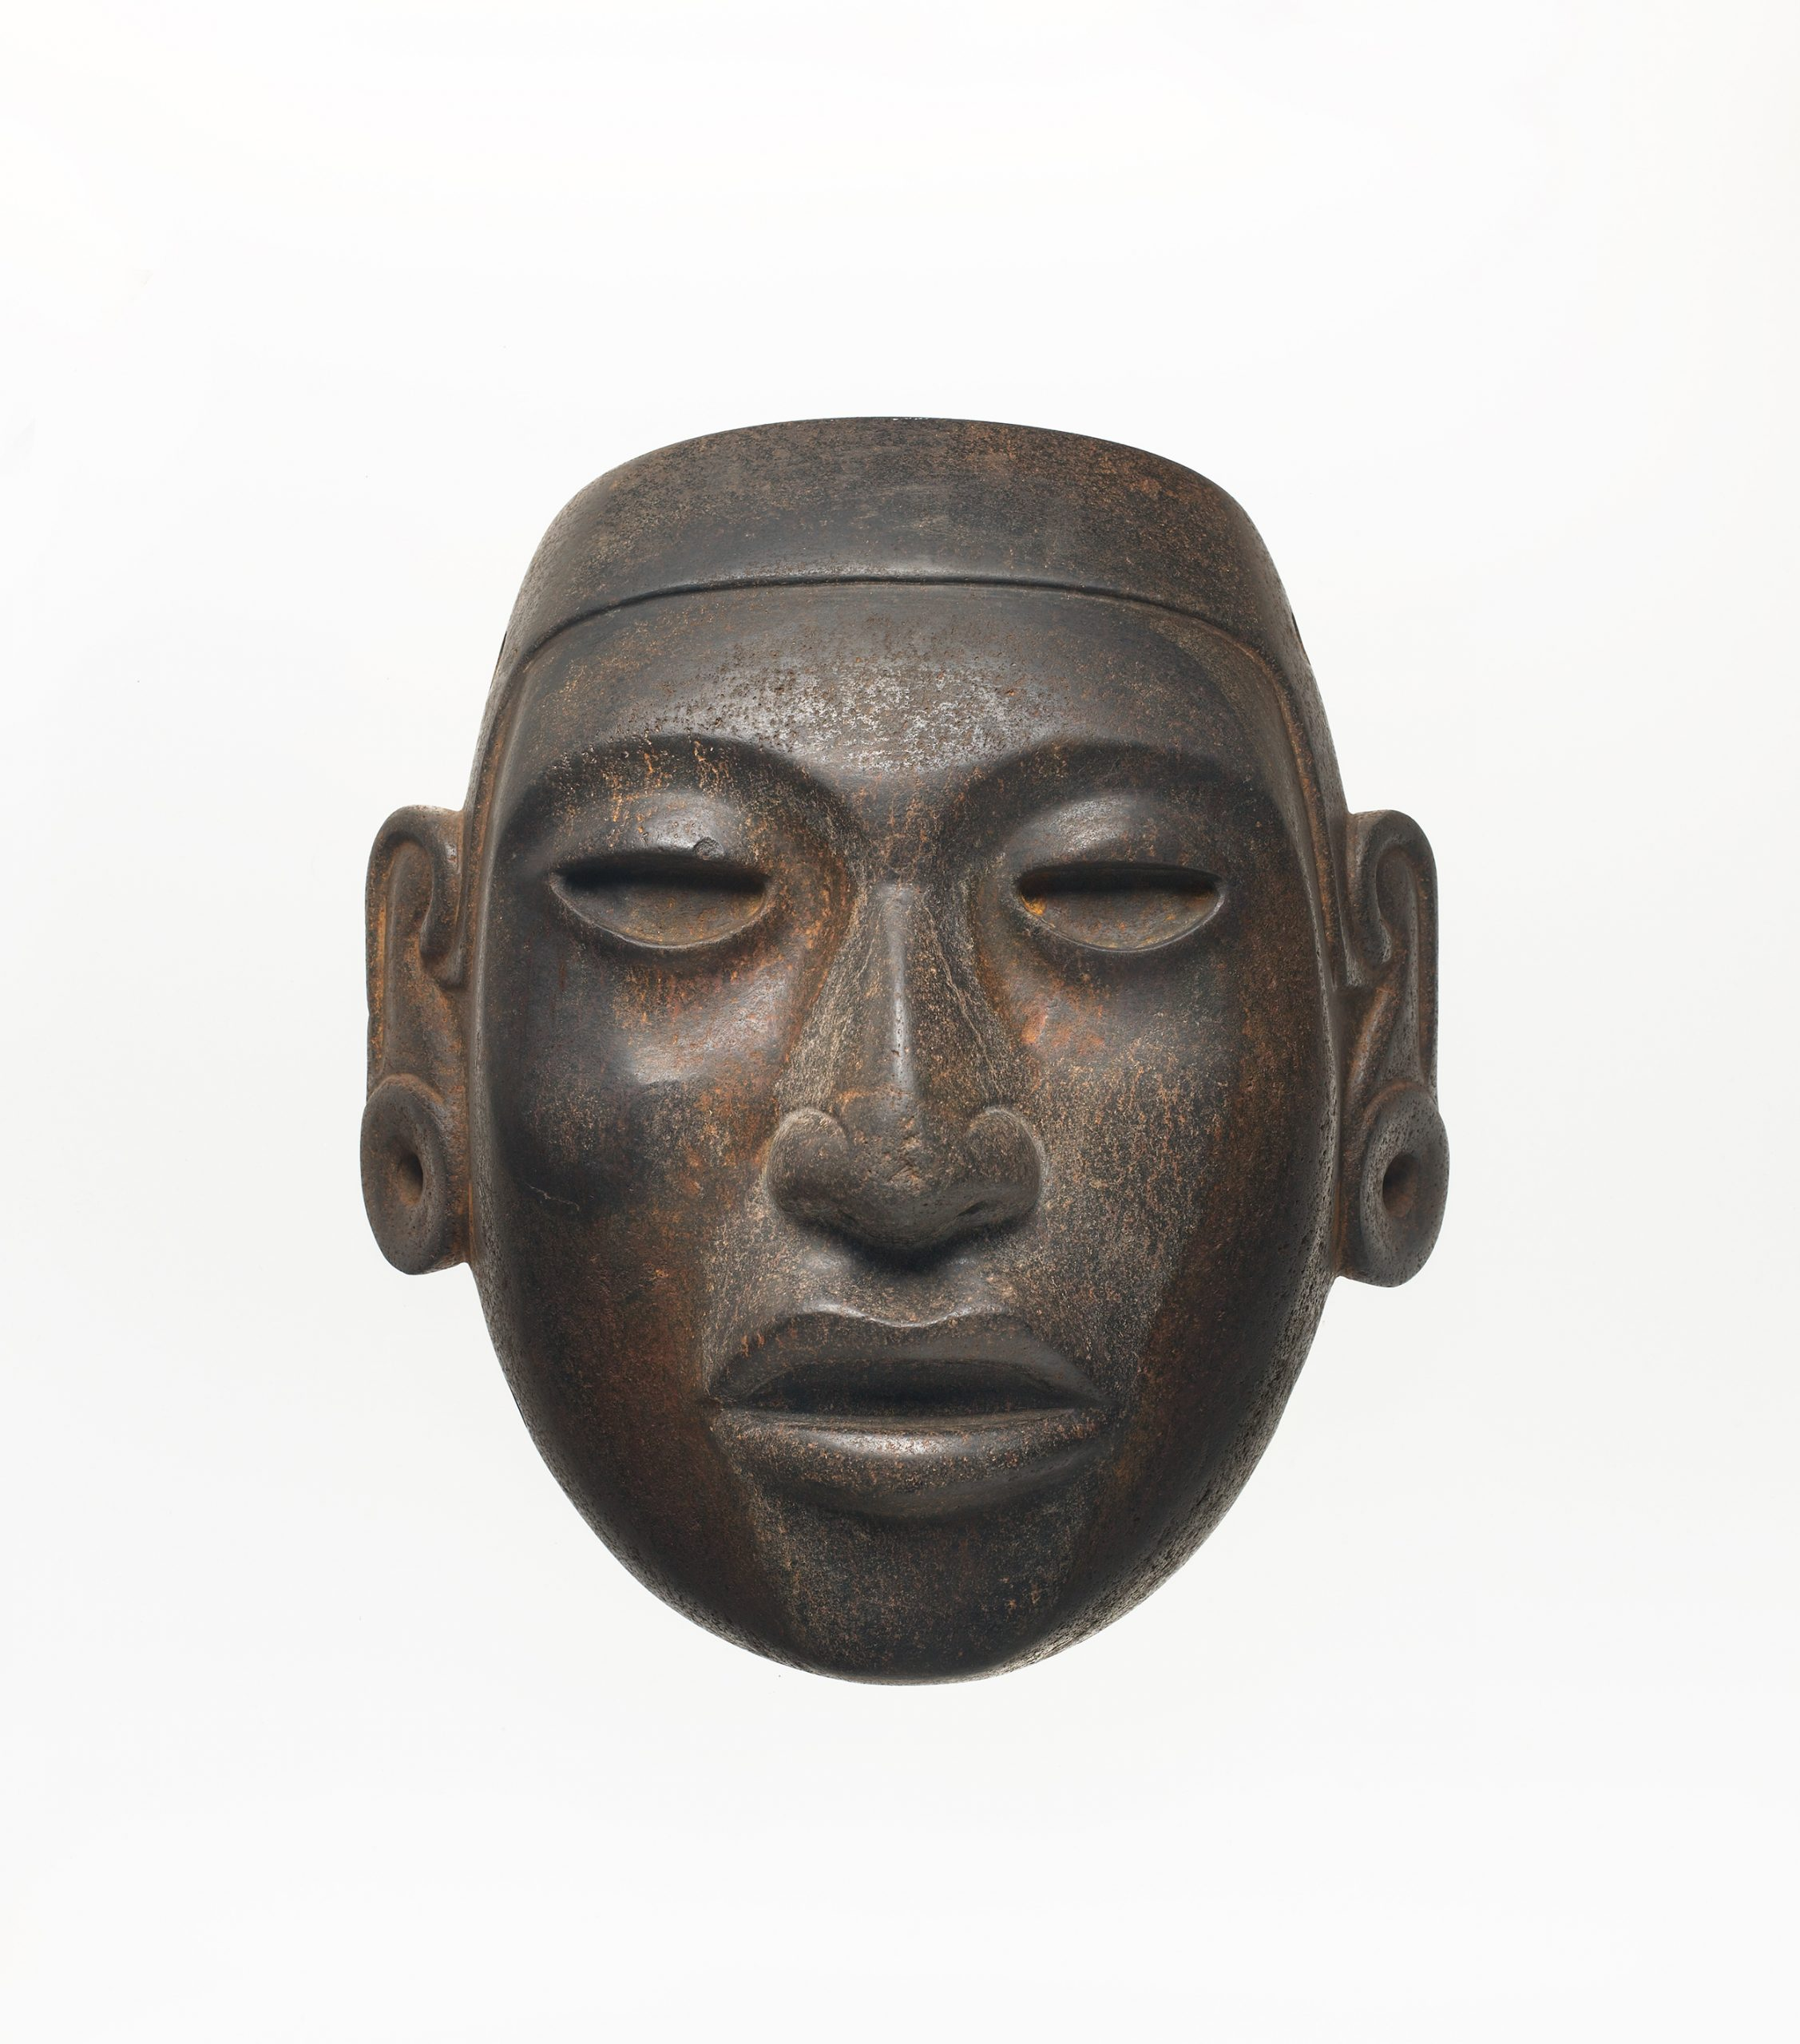 A brown mask with hollow eyes, a realistic mouth and nose, and pierced ear spools.